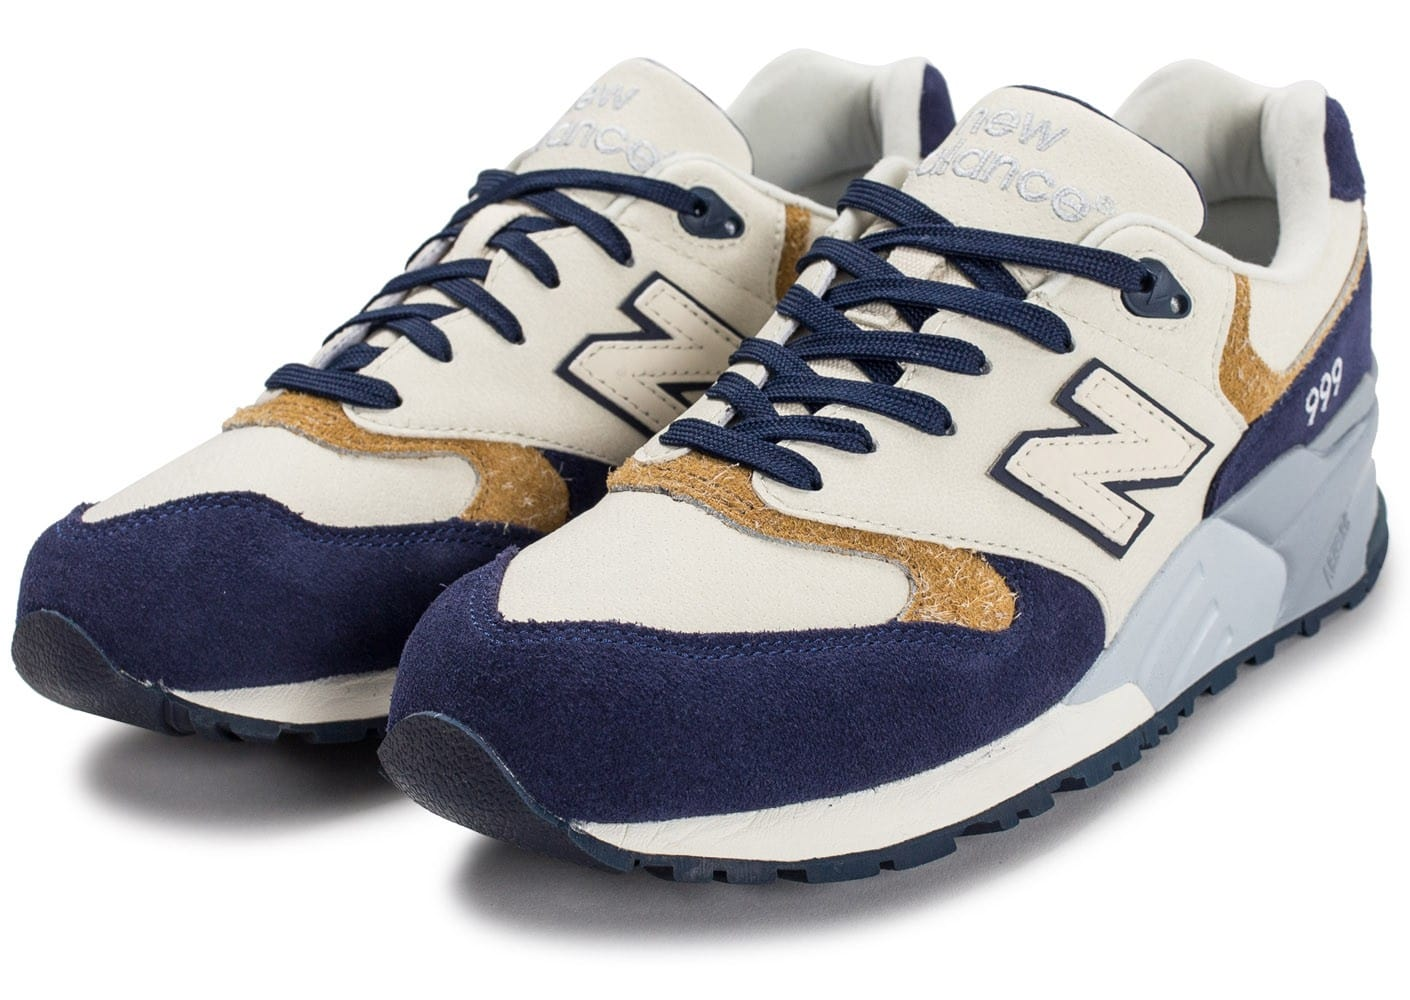 new balance ml999 na beige et bleu marine chaussures homme chausport. Black Bedroom Furniture Sets. Home Design Ideas